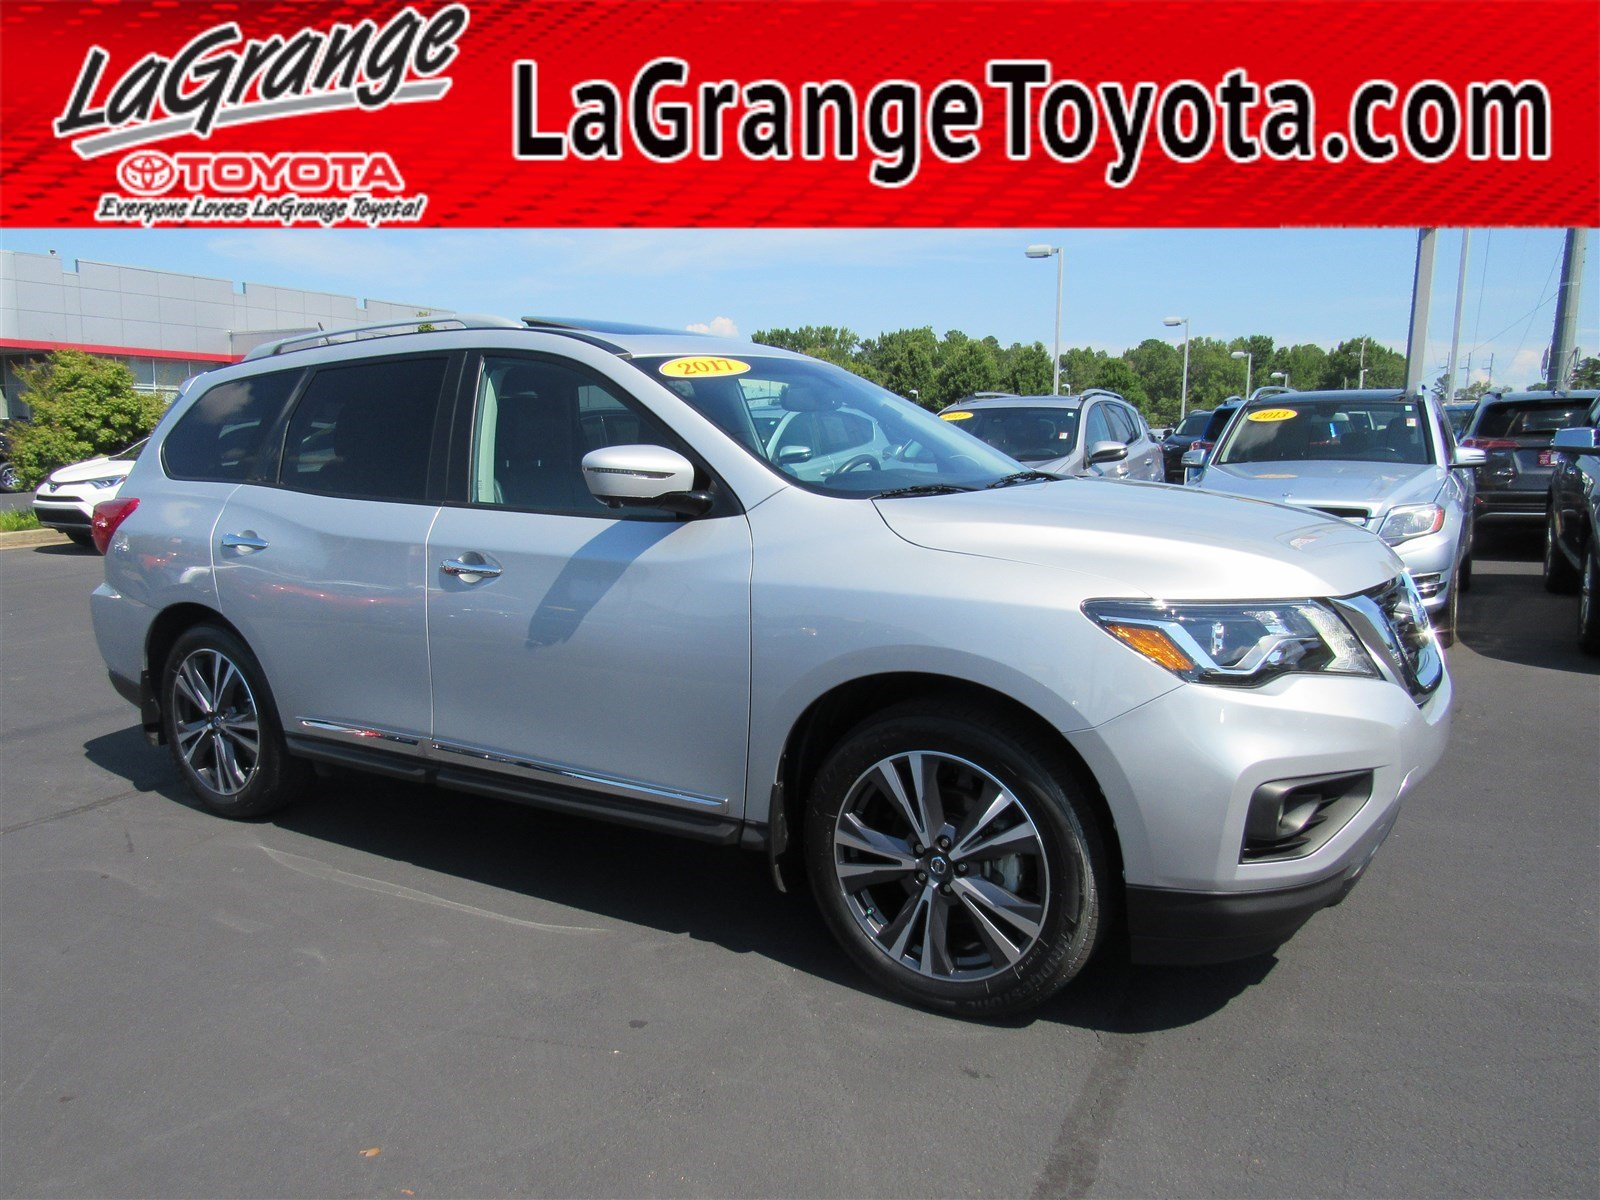 Pre Owned 2017 Nissan Pathfinder FWD Platinum SUV in LaGrange